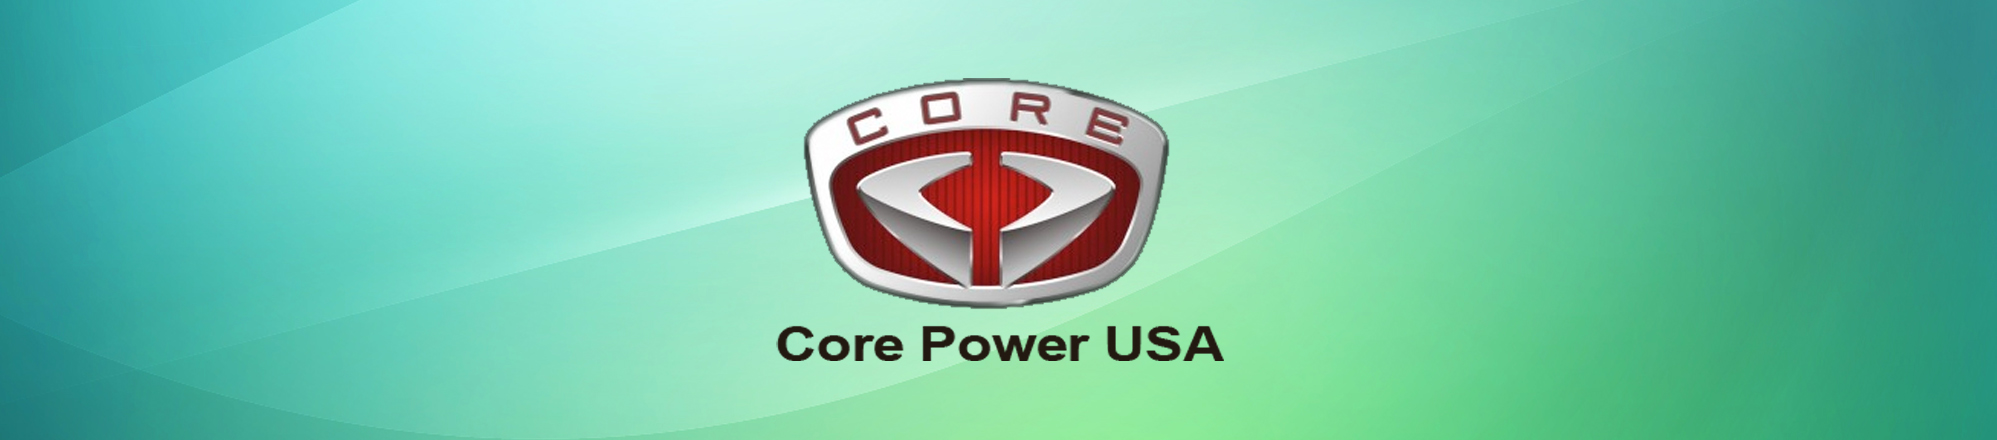 Core Power USA